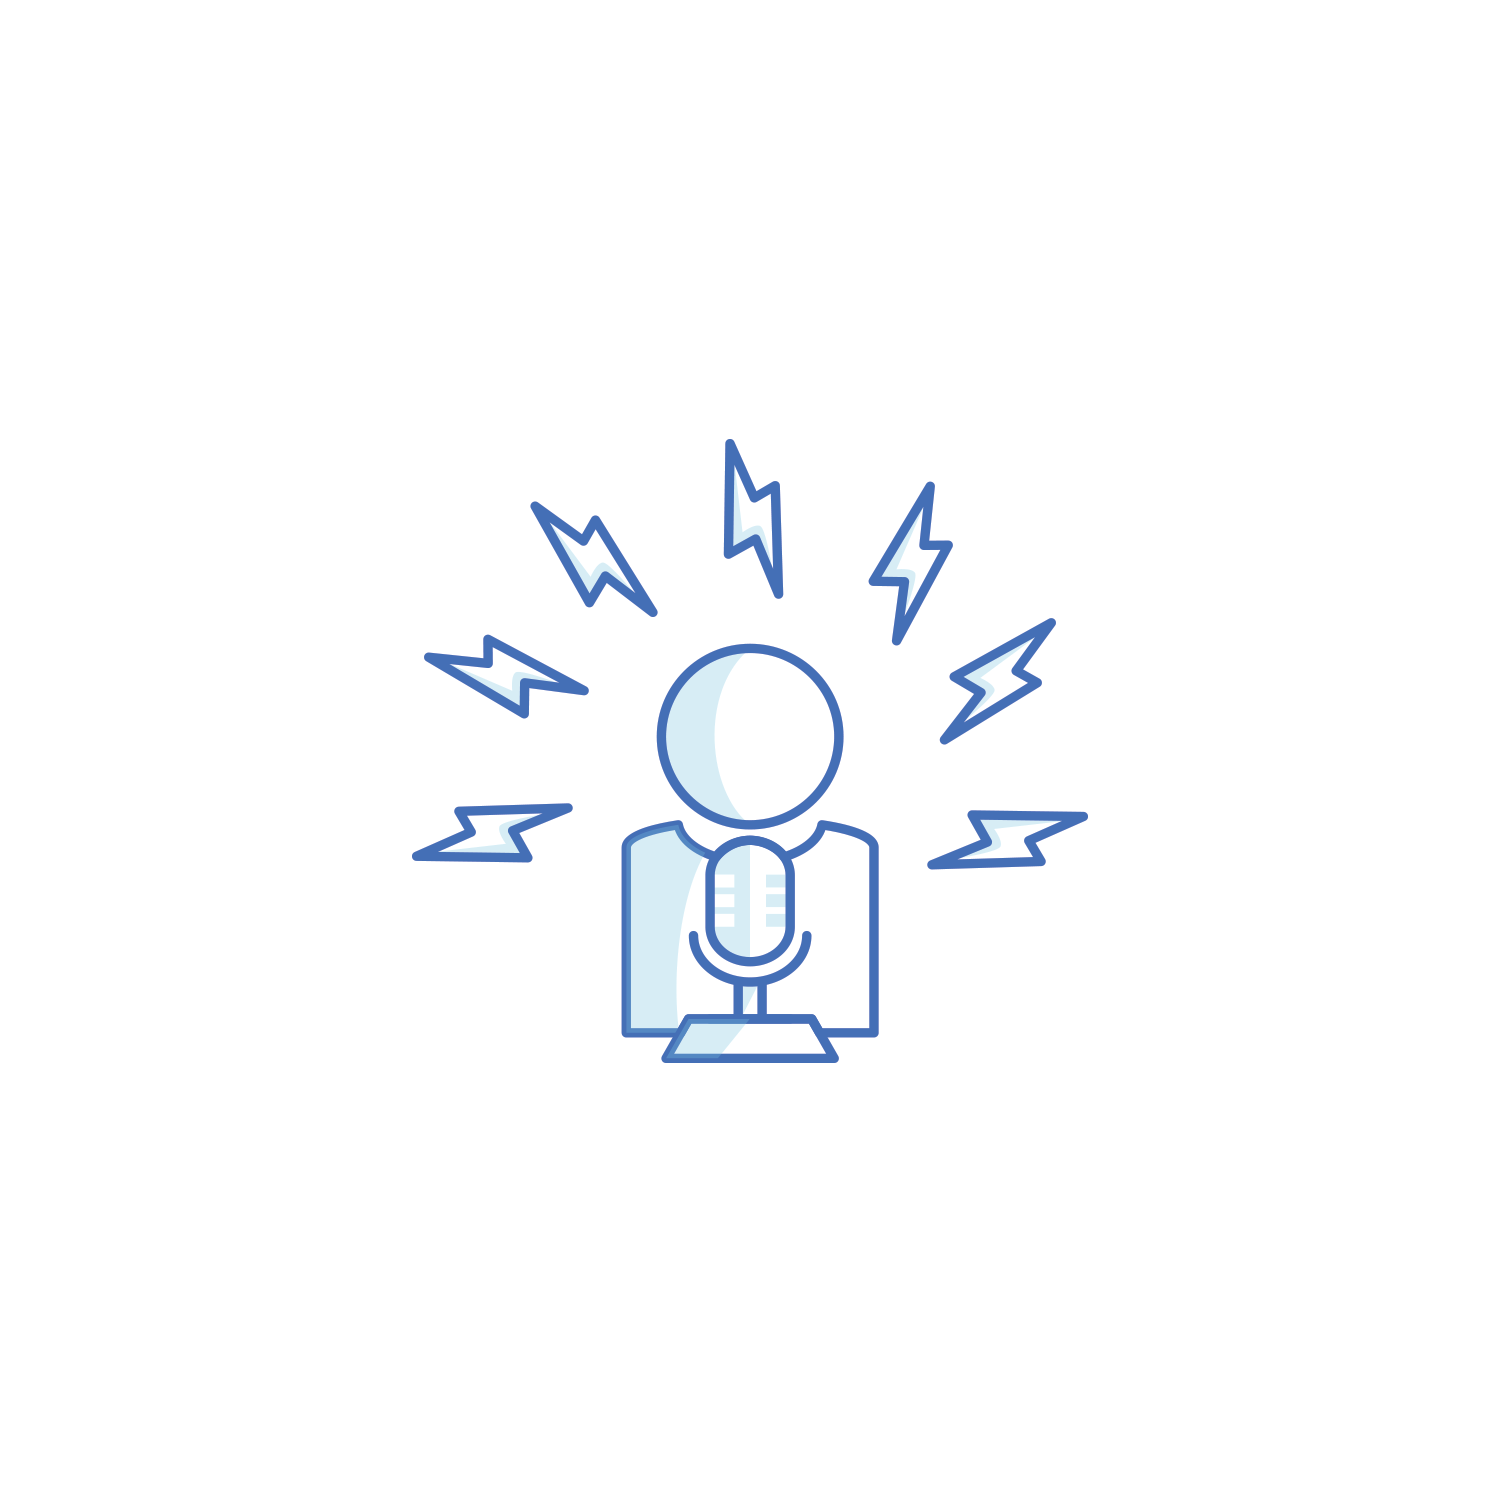 Learn-From-the-Best.png